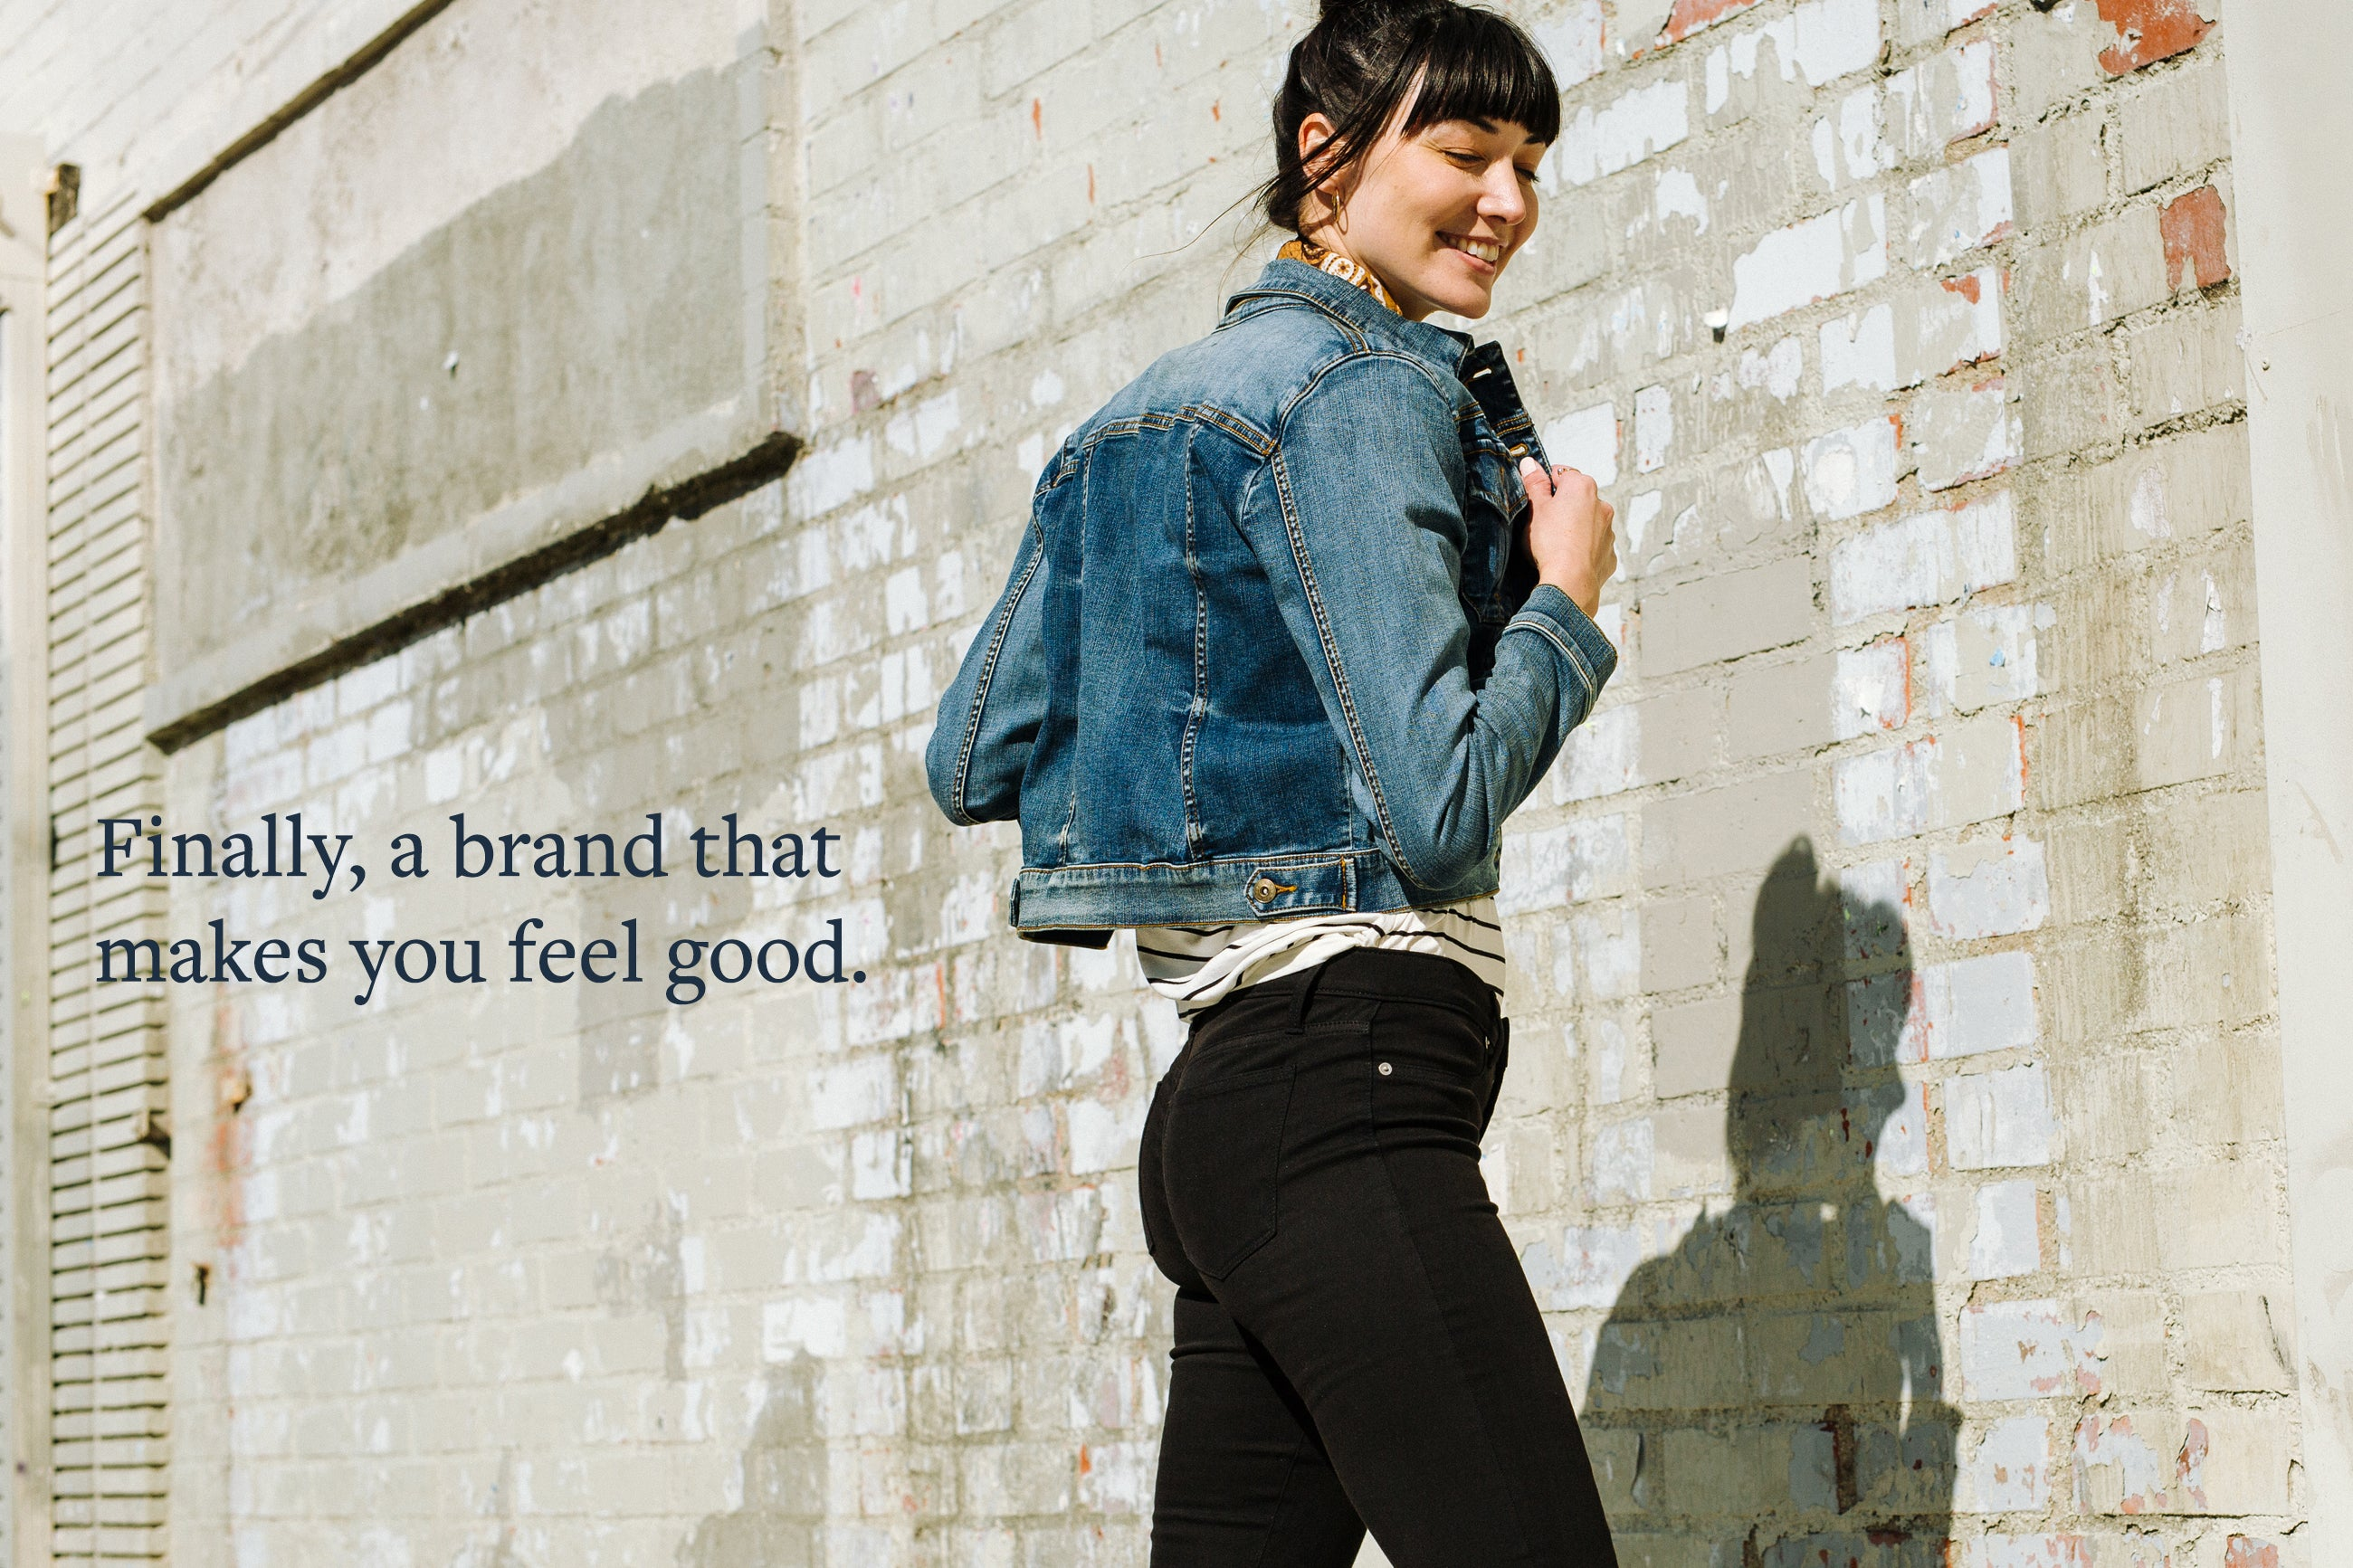 Finally, a brand that makes you feel good.